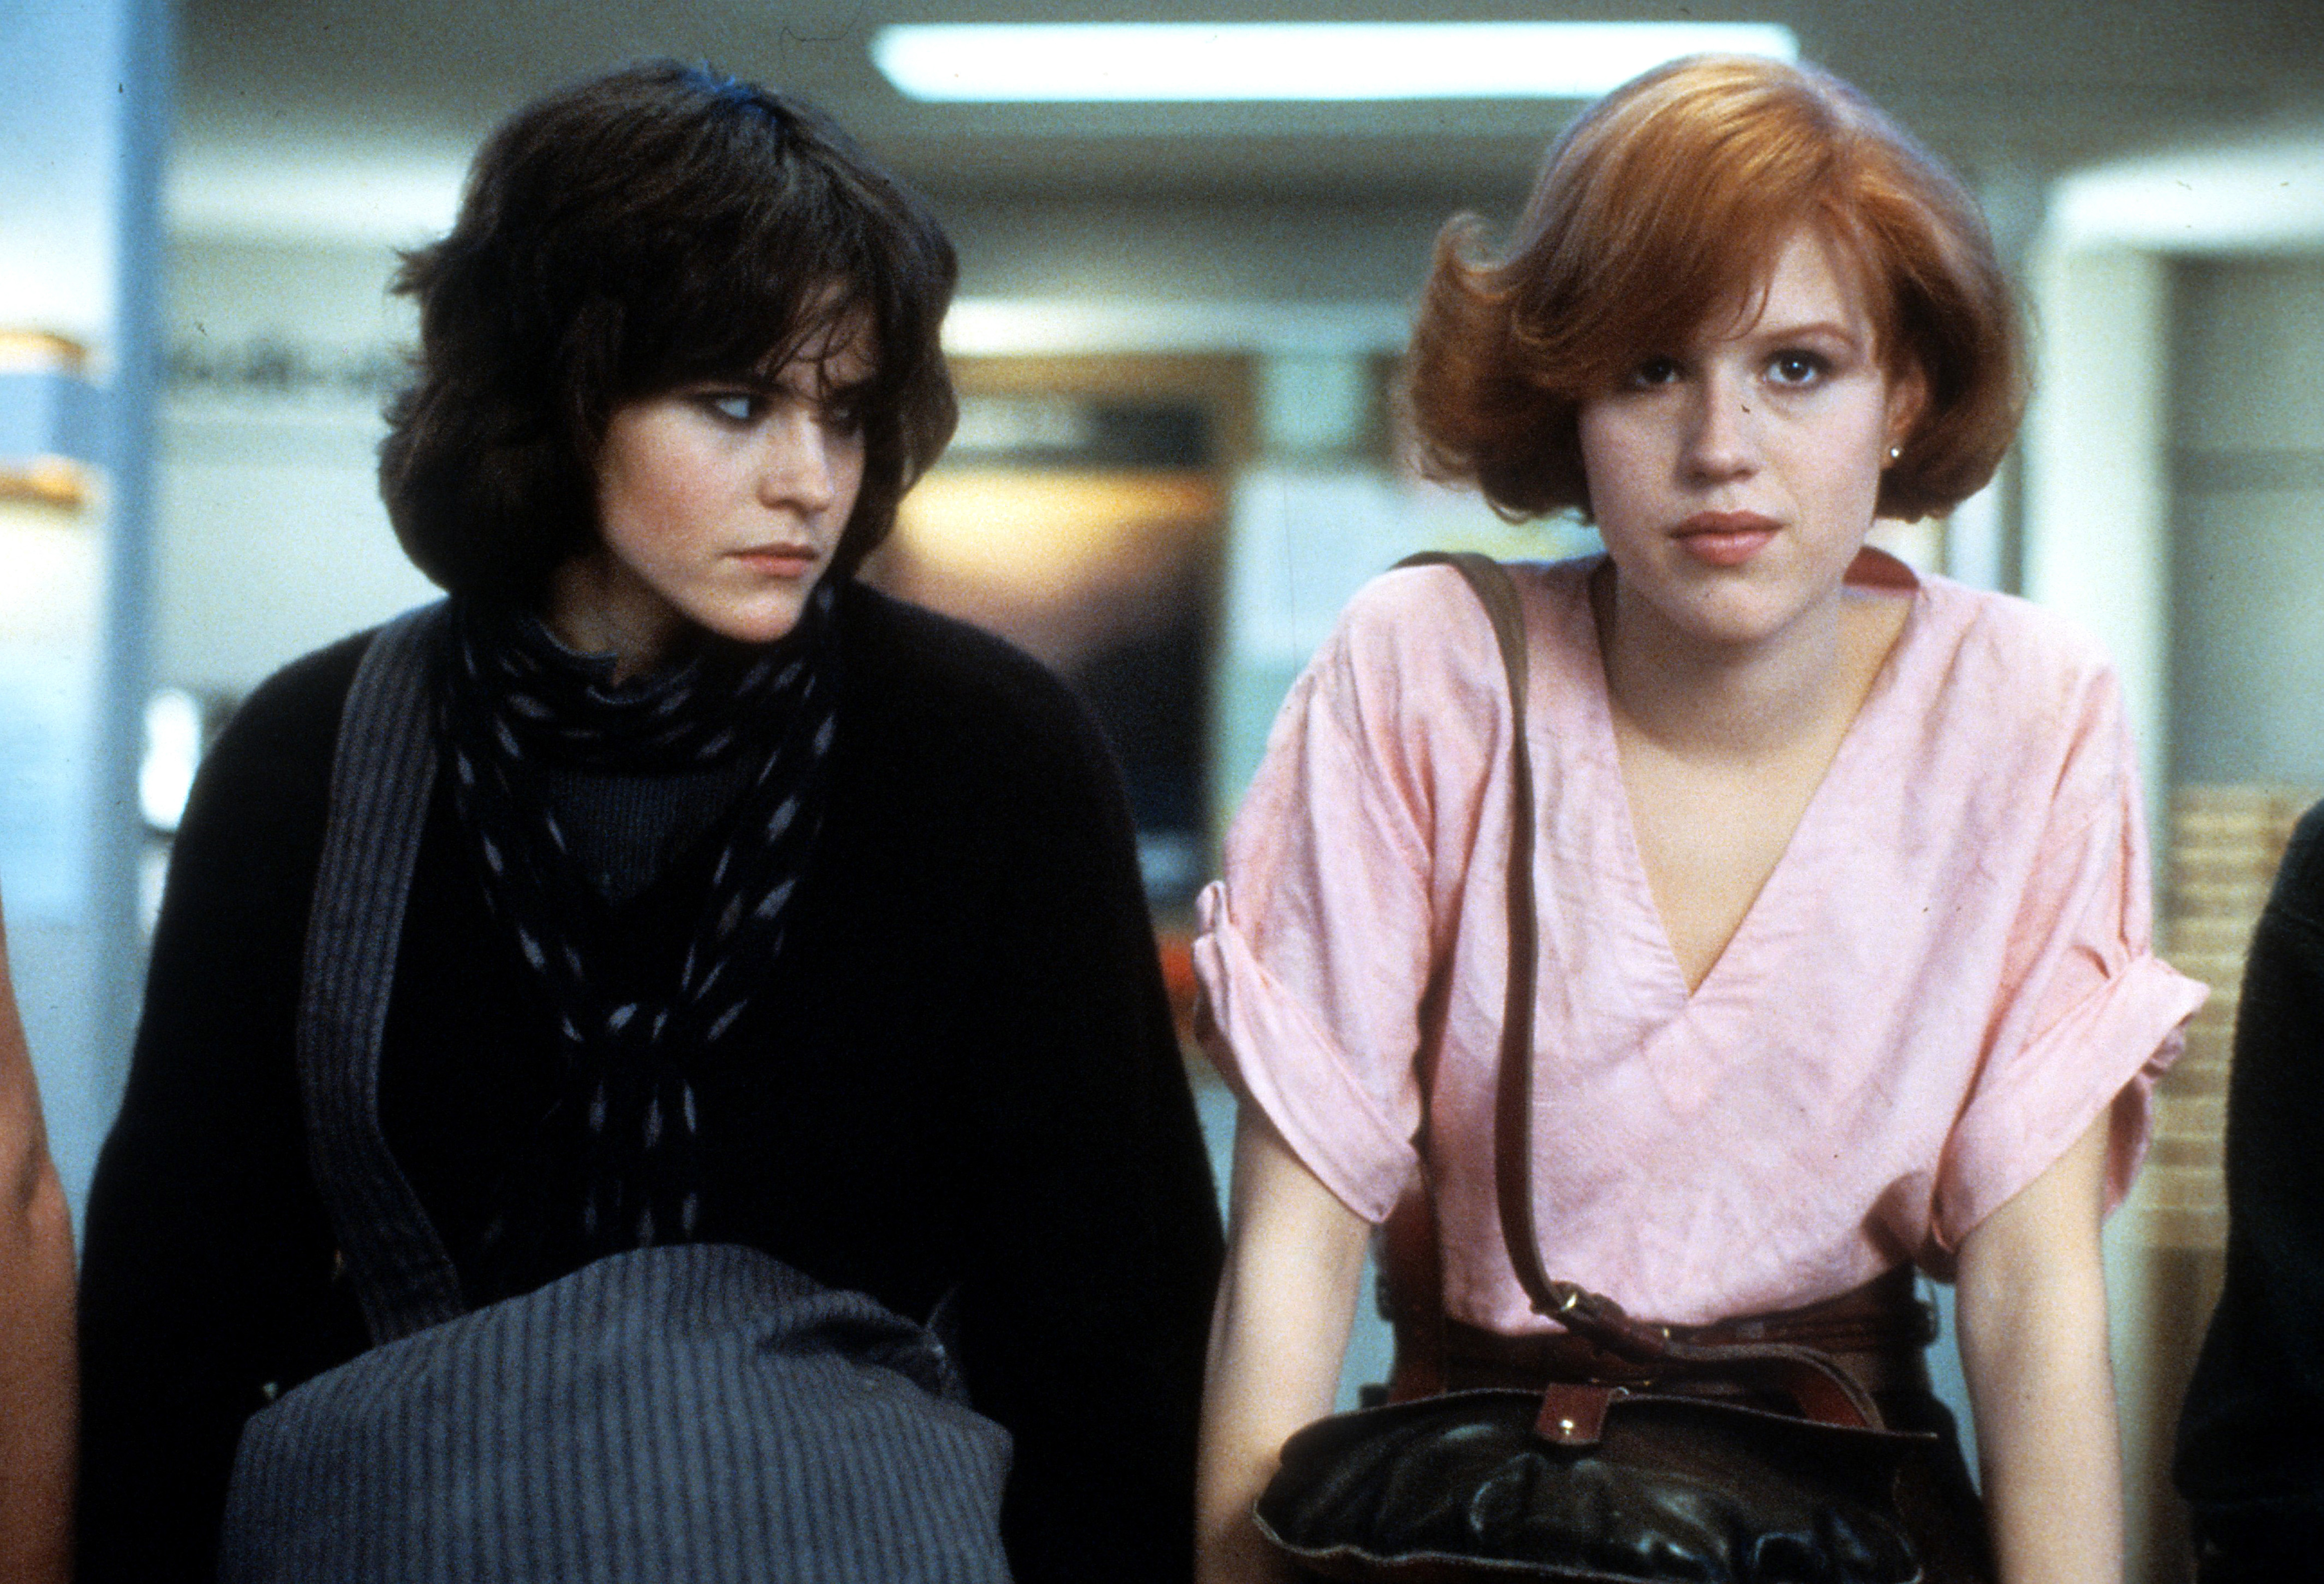 Ally Sheedy and Molly Ringwald in a scene from the film 'The Breakfast Club', 1985.